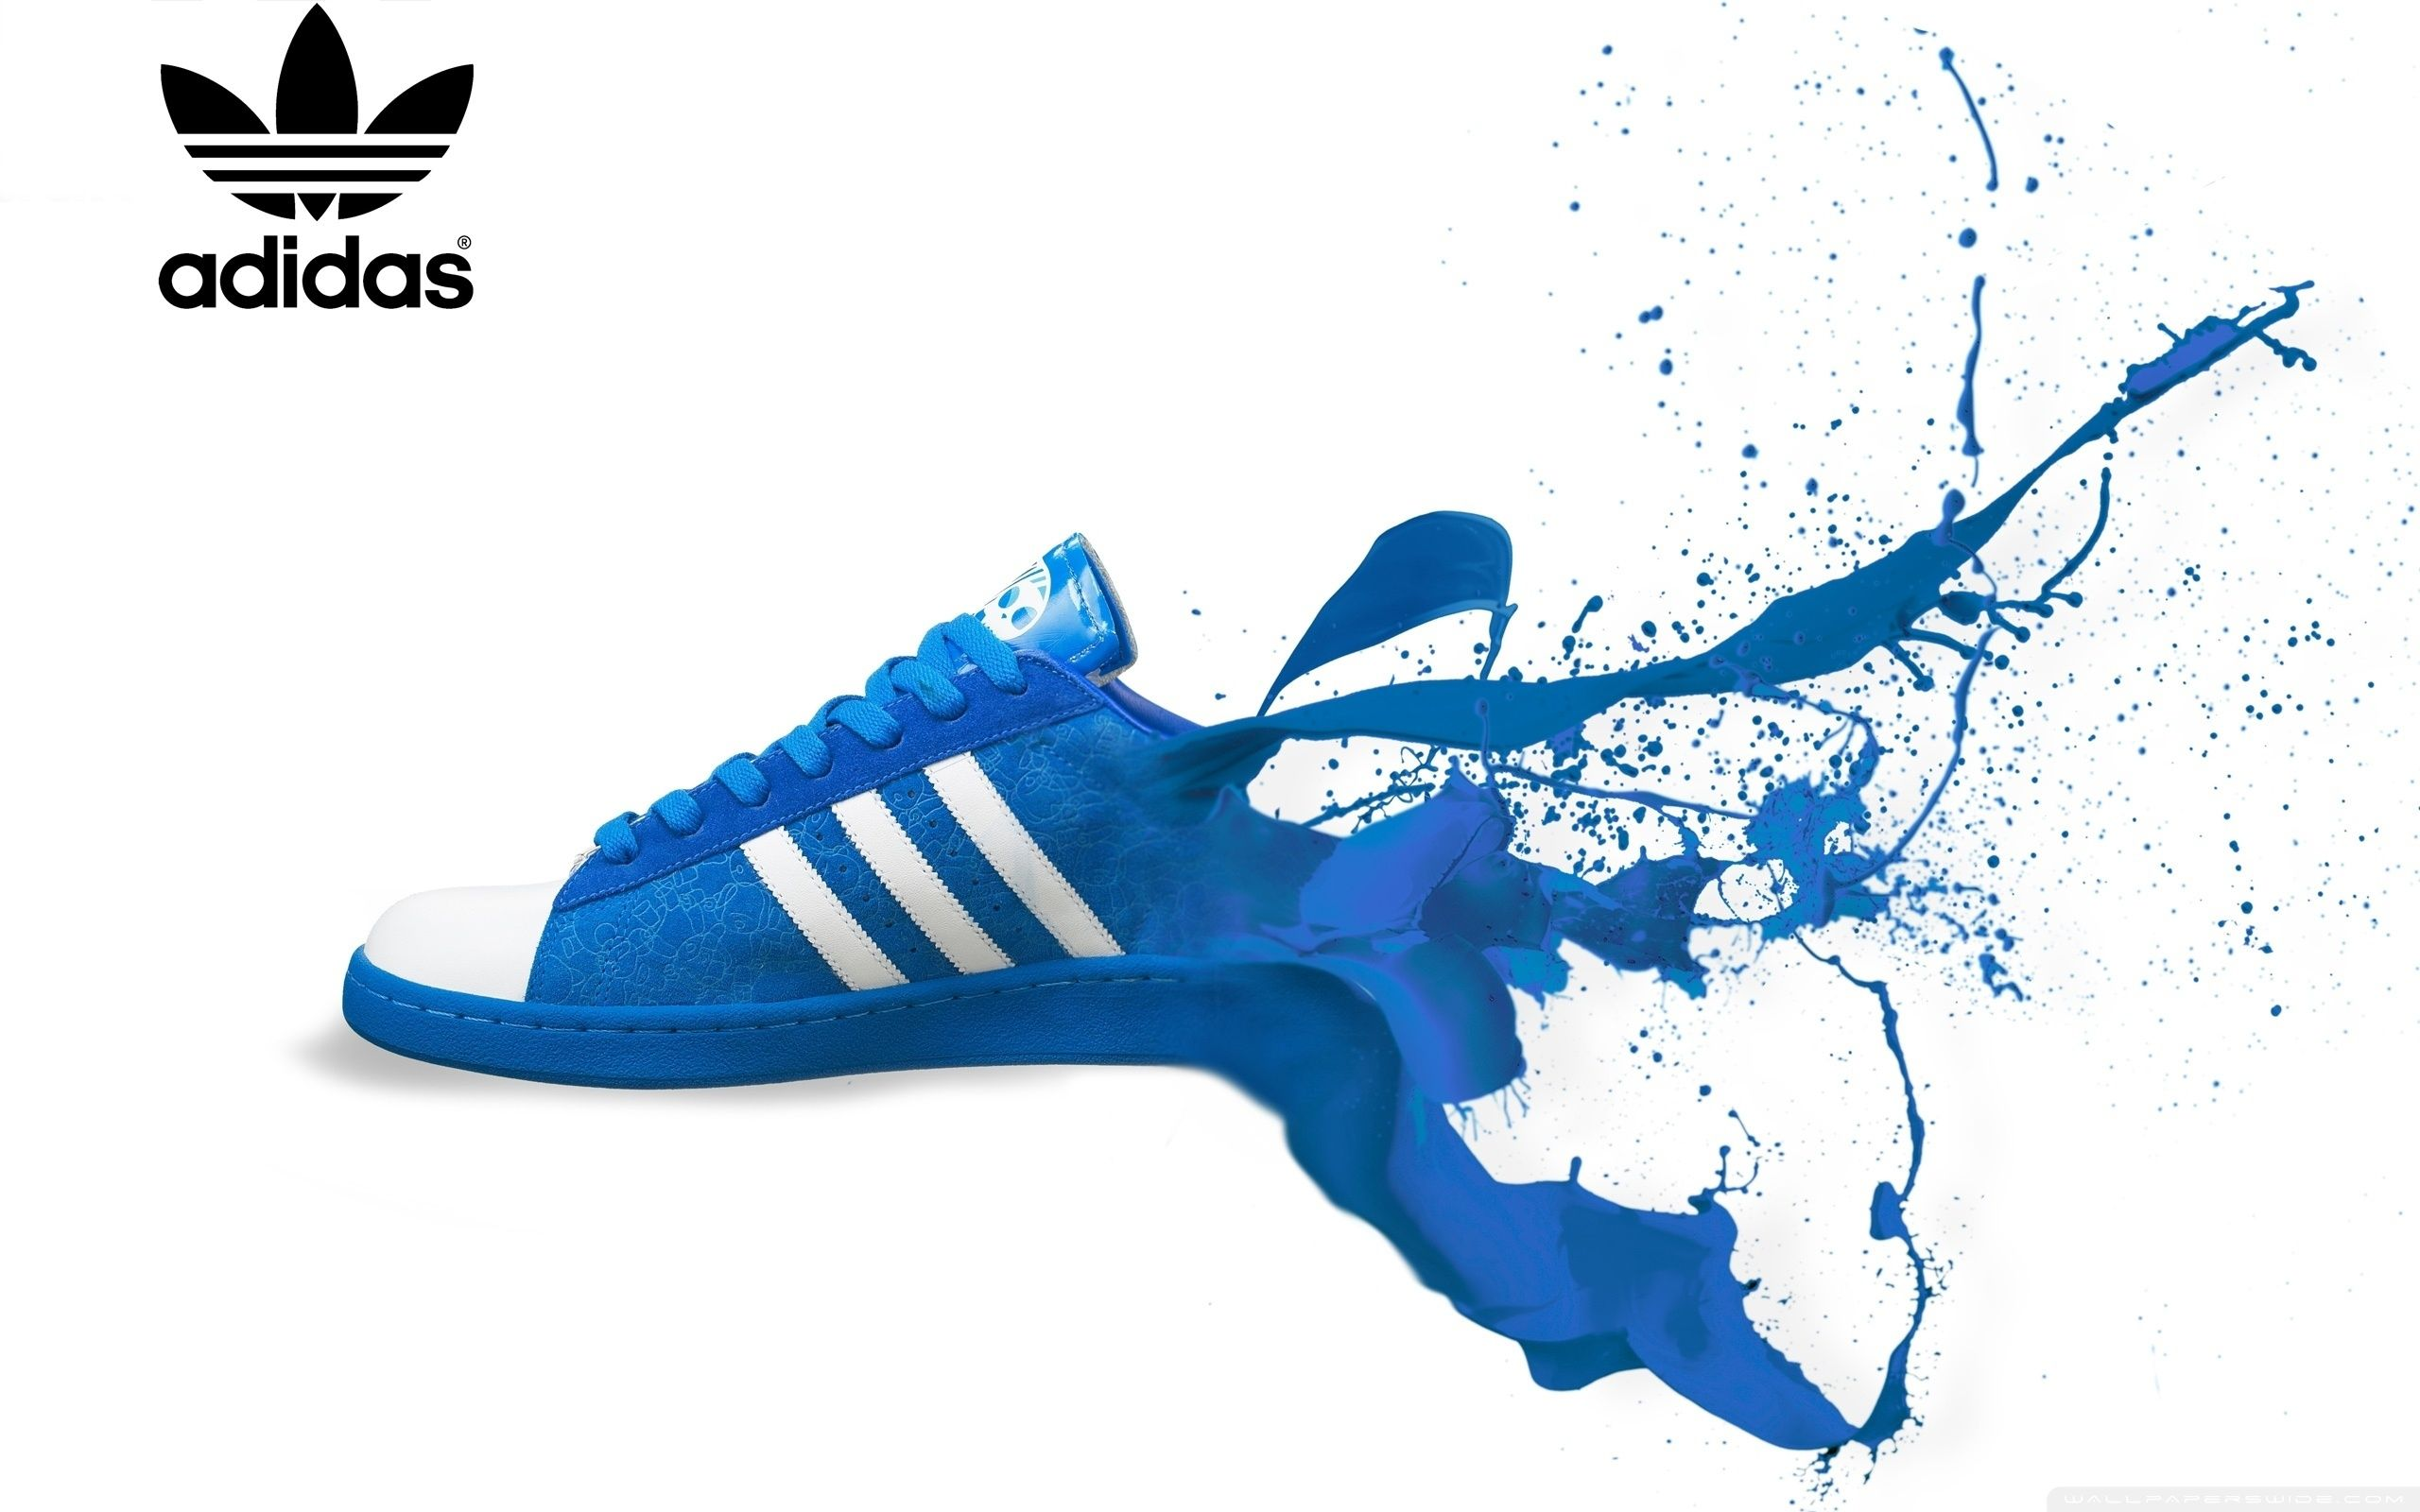 Image detail for -Adidas Shoe Ad HD desktop wallpaper : Widescreen